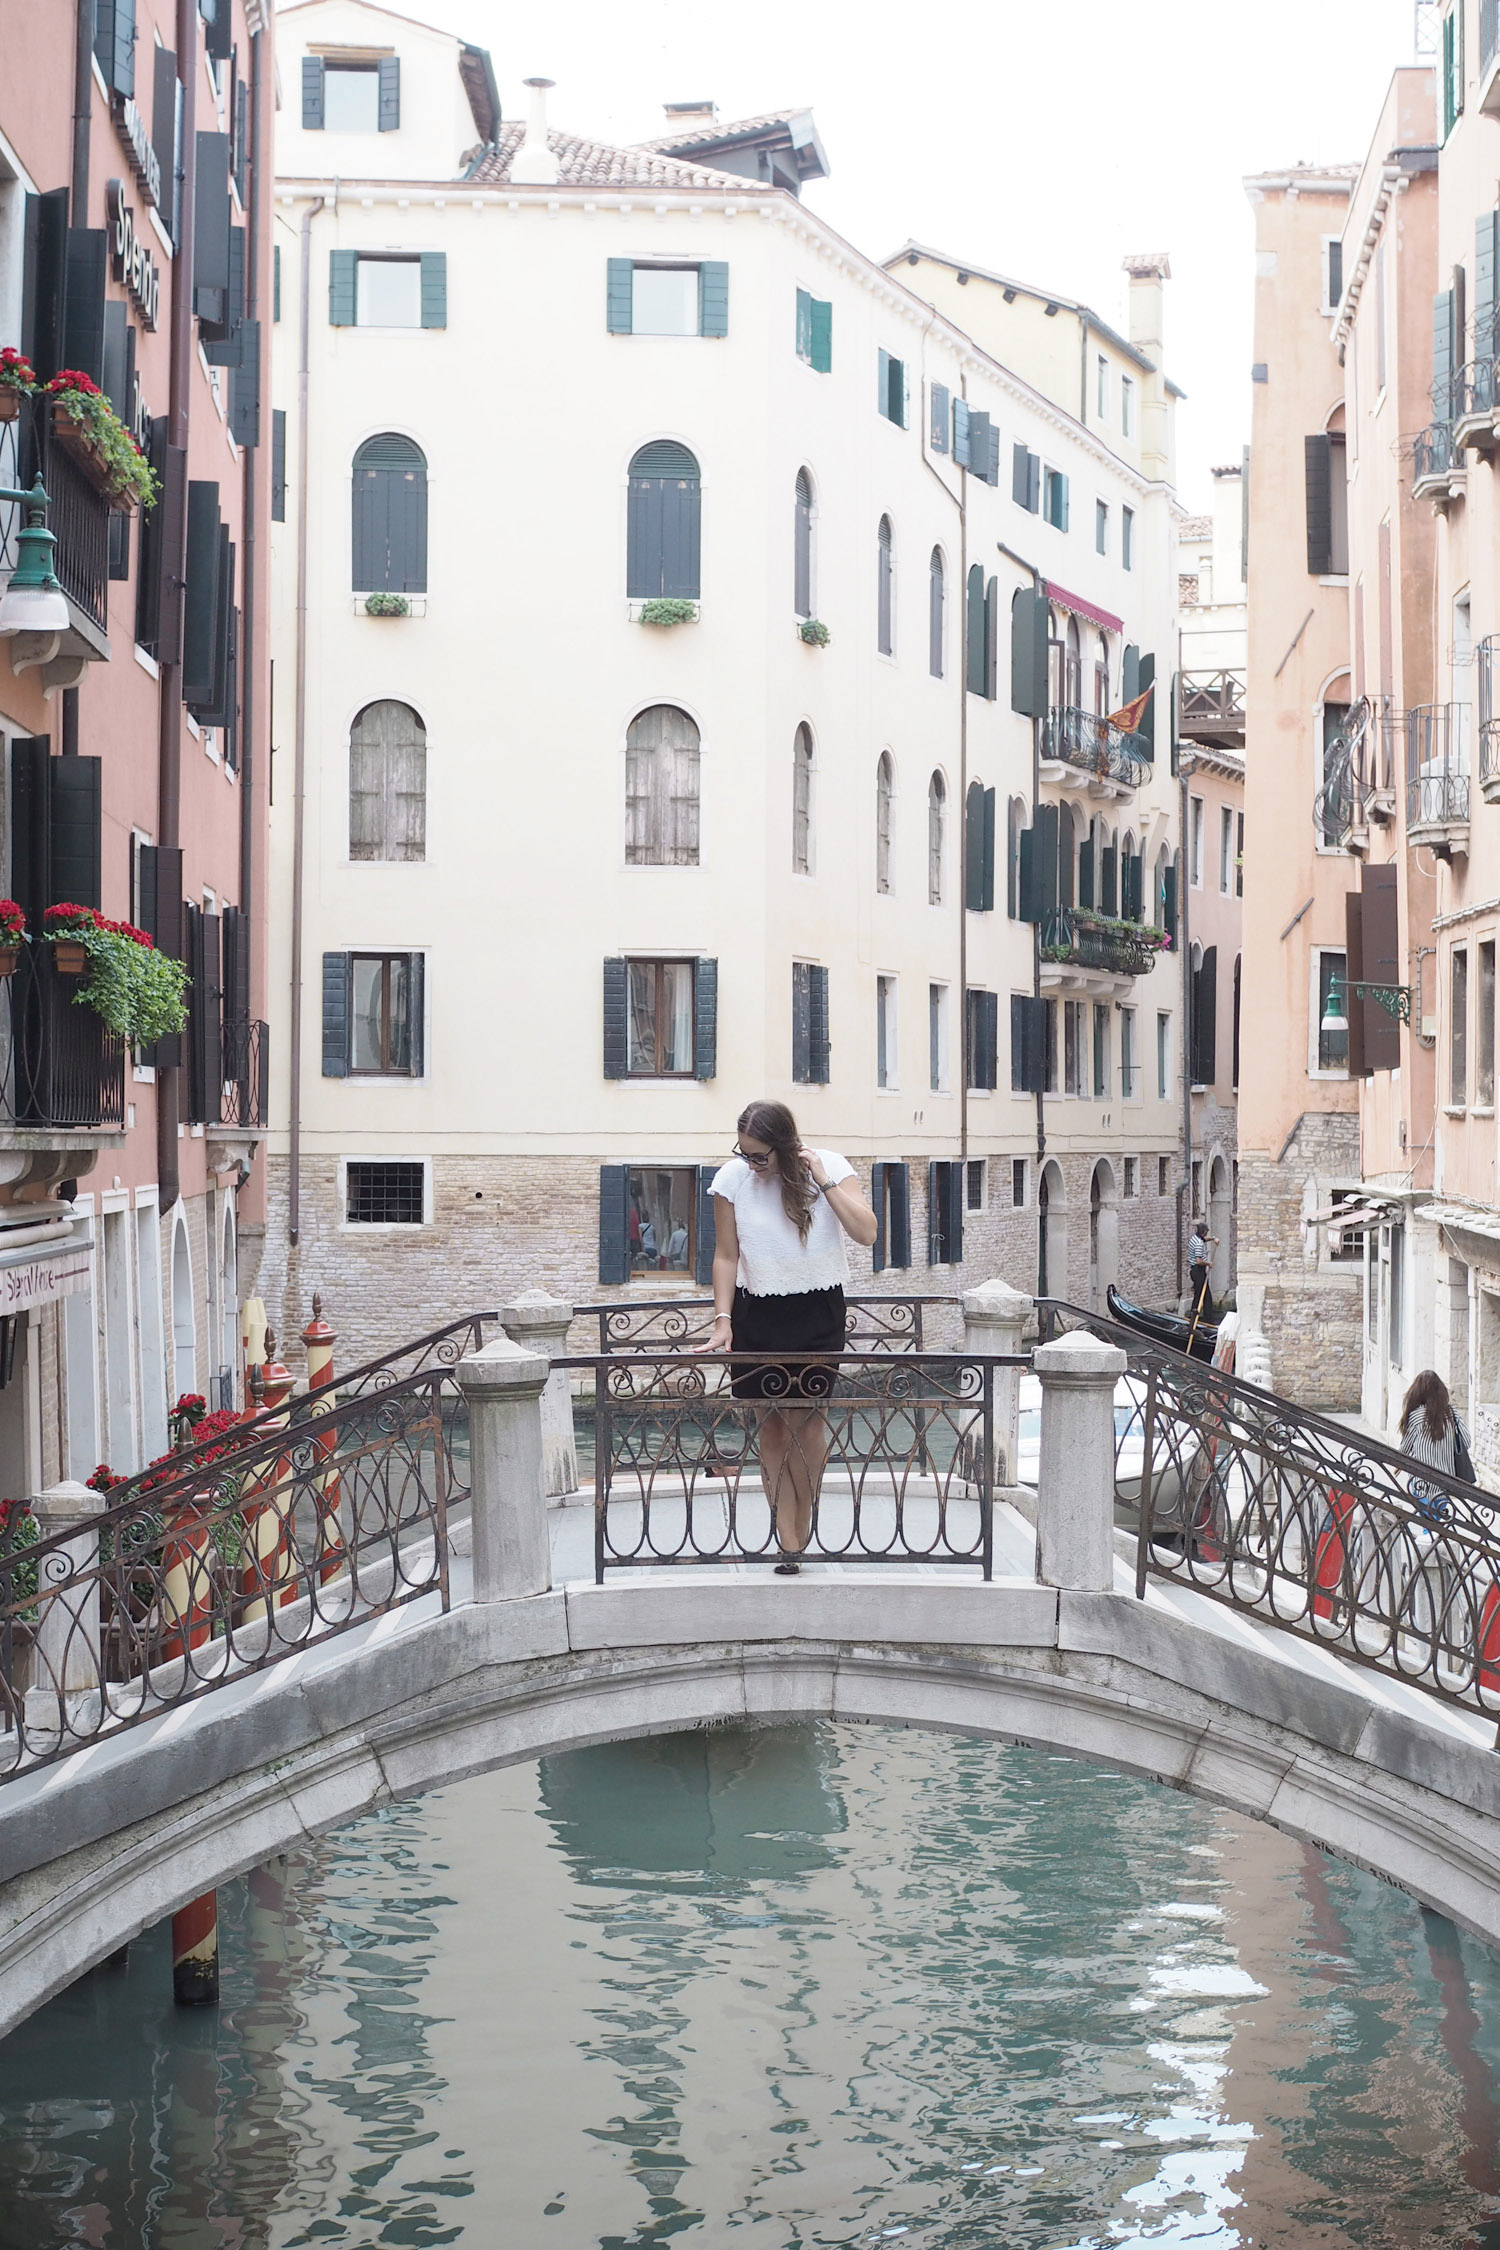 Char and the city - A day in Venice, Italy - the sinking city - travel tips: gondola ride, Bridge of Sights, Rialto Bridge, San Marco Square, Harry´s Bar and many more! Read on the blog: //www.idealista.fi/charandthecity/2016/09/11/matkavinkit-venetsia/